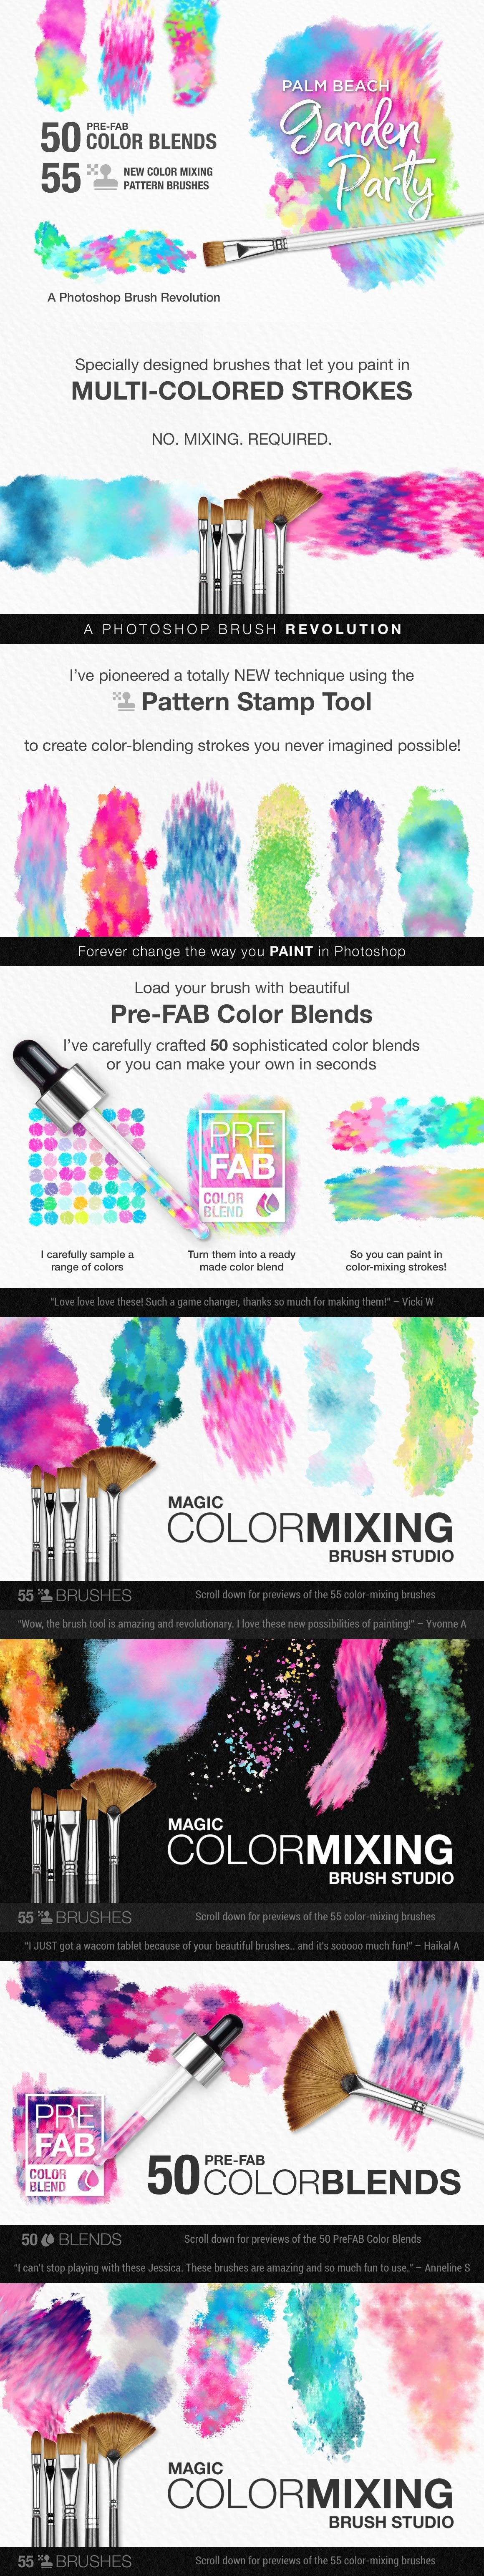 Palm Beach Garden Party Color-Blending Watercolor Photoshop Brushes preview image 5